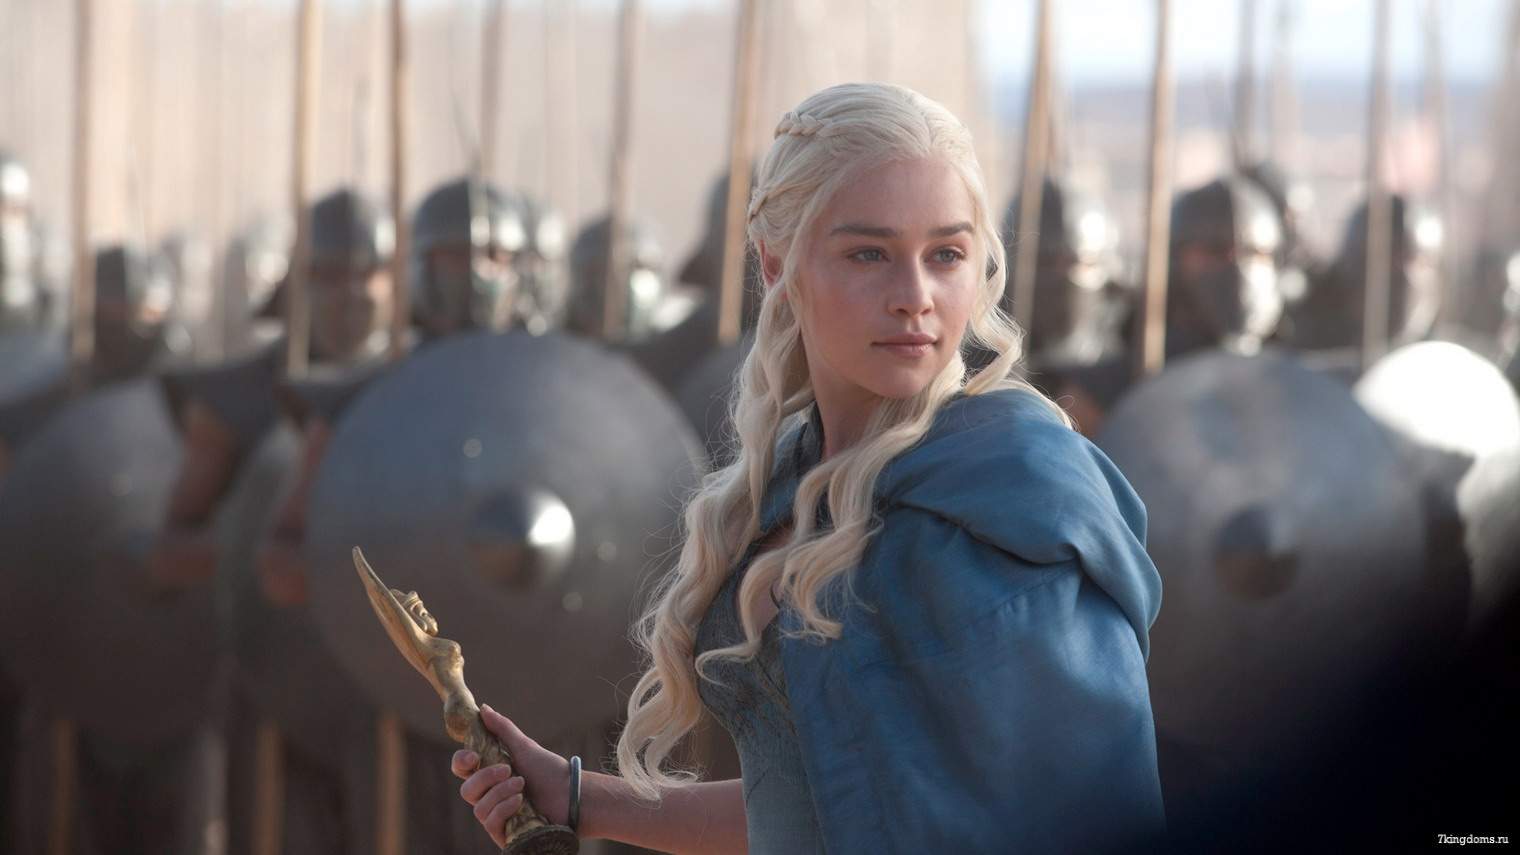 Daenerys Targaryen from Game Of Thrones wearing blue dress